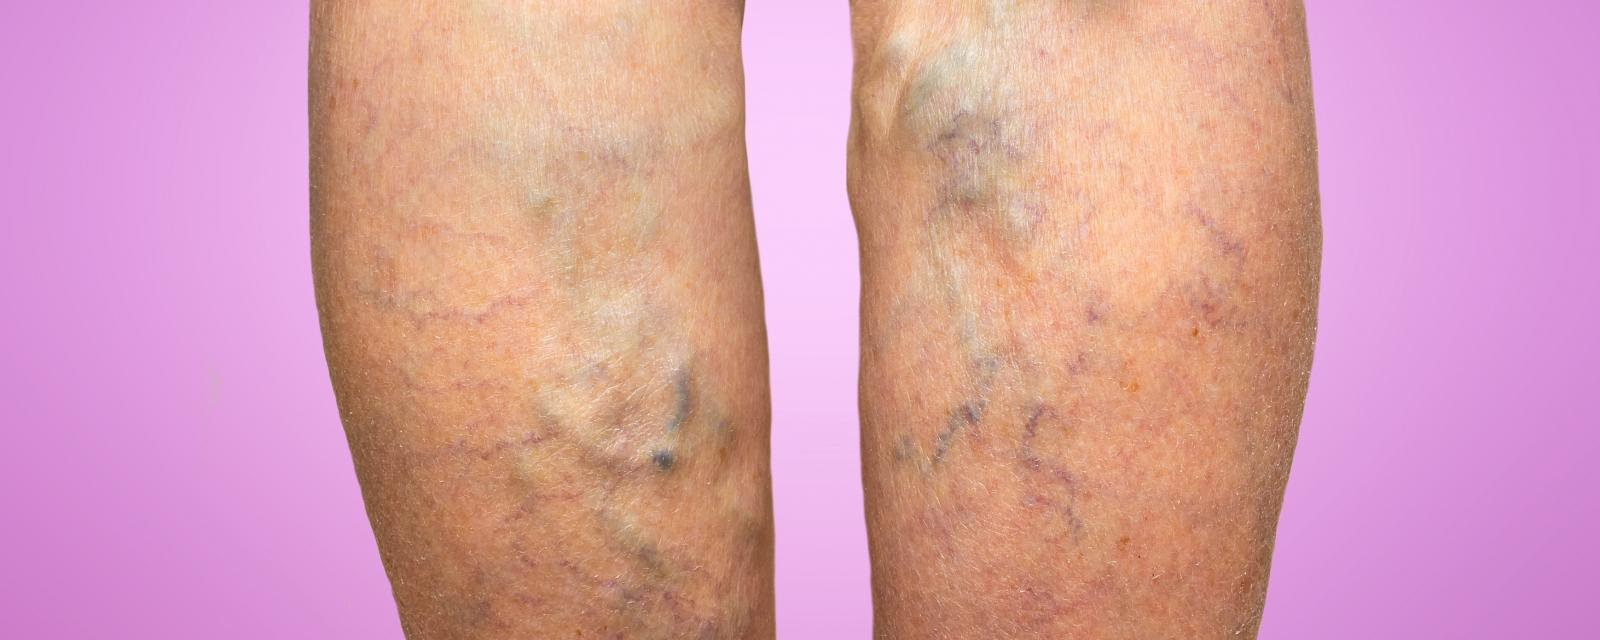 Five Myths About Spider and Varicose Veins - MercyOne Iowa Heart Vein Center